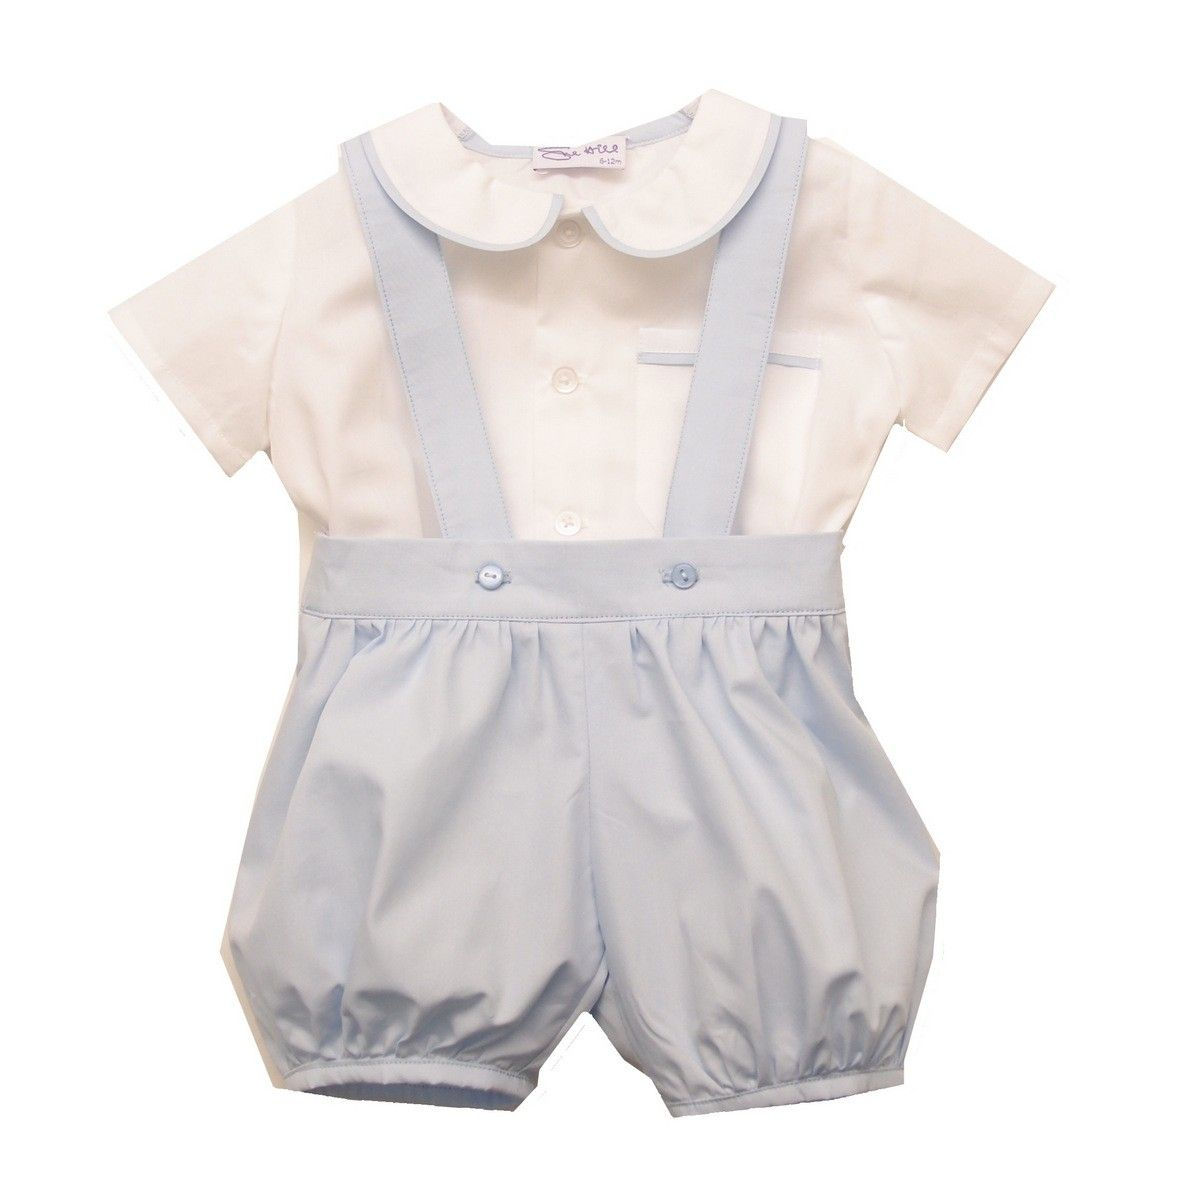 a5f4a2a6bd1c William Shirt Romper Pants. This baby boys outfit is ideal for any special  occasion such as christening